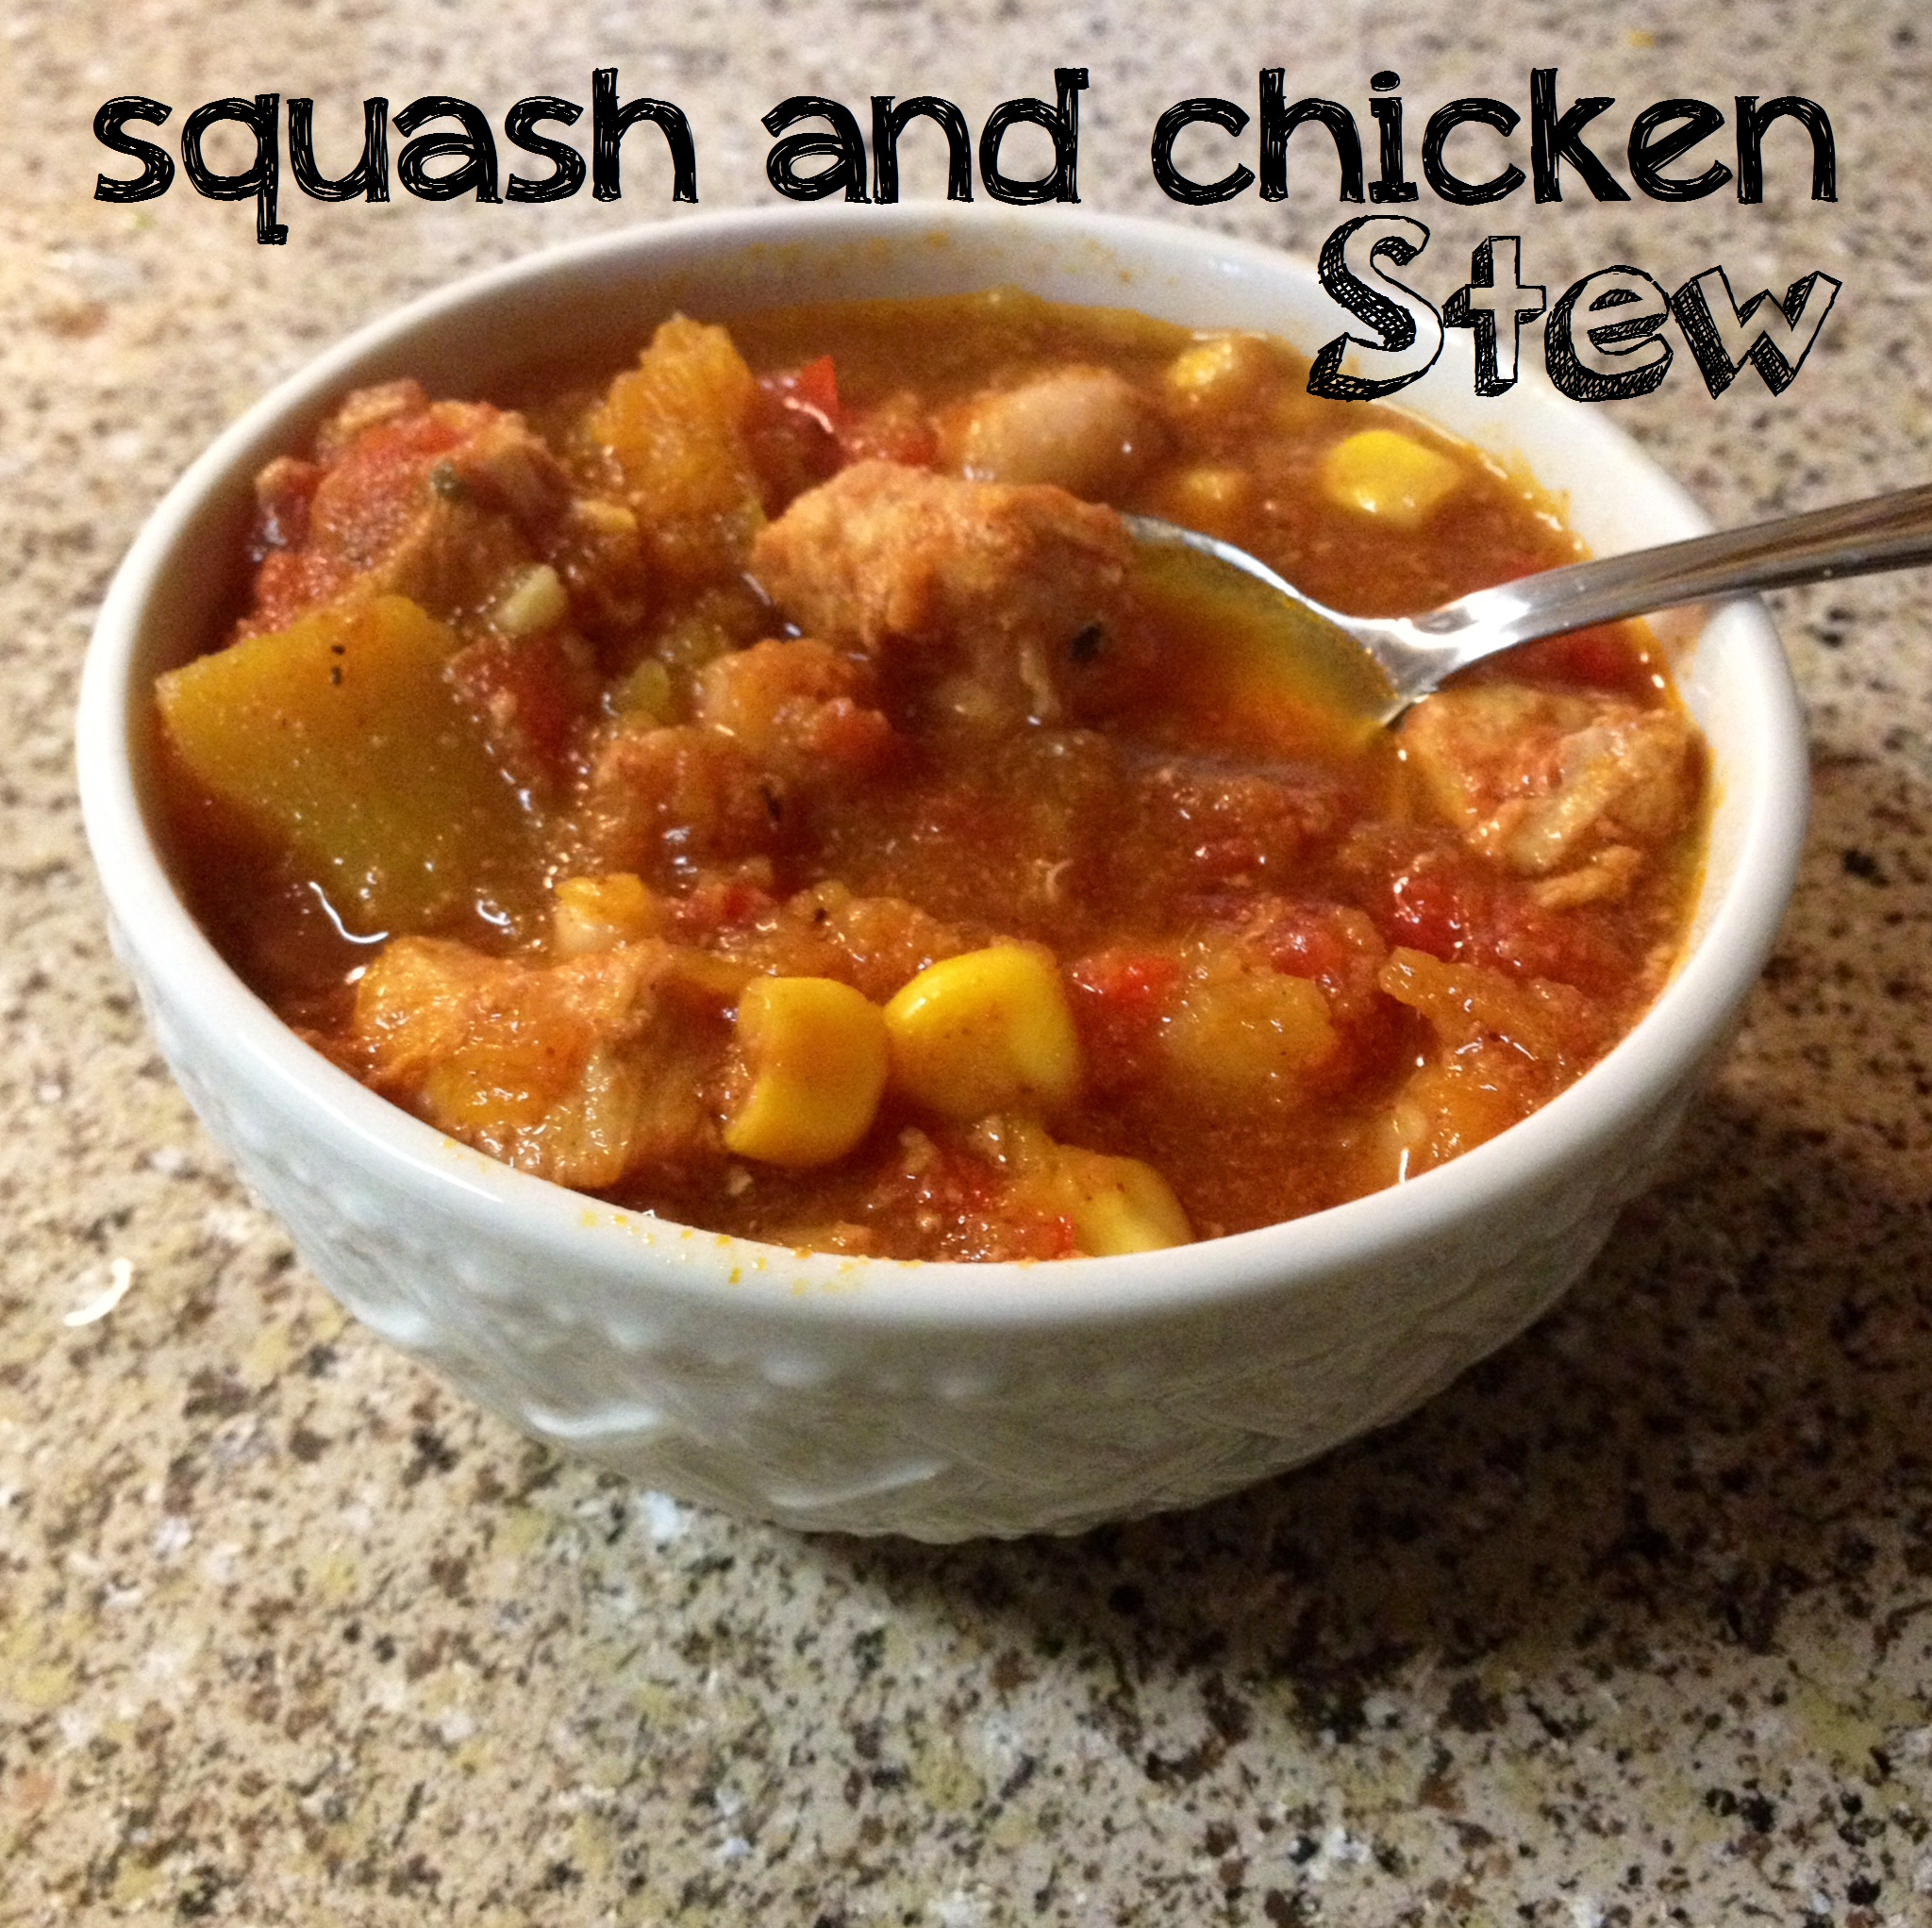 Snowy Day Squash and Chicken Stew Recipe – A Month of 365 Slow Cooker Suppers